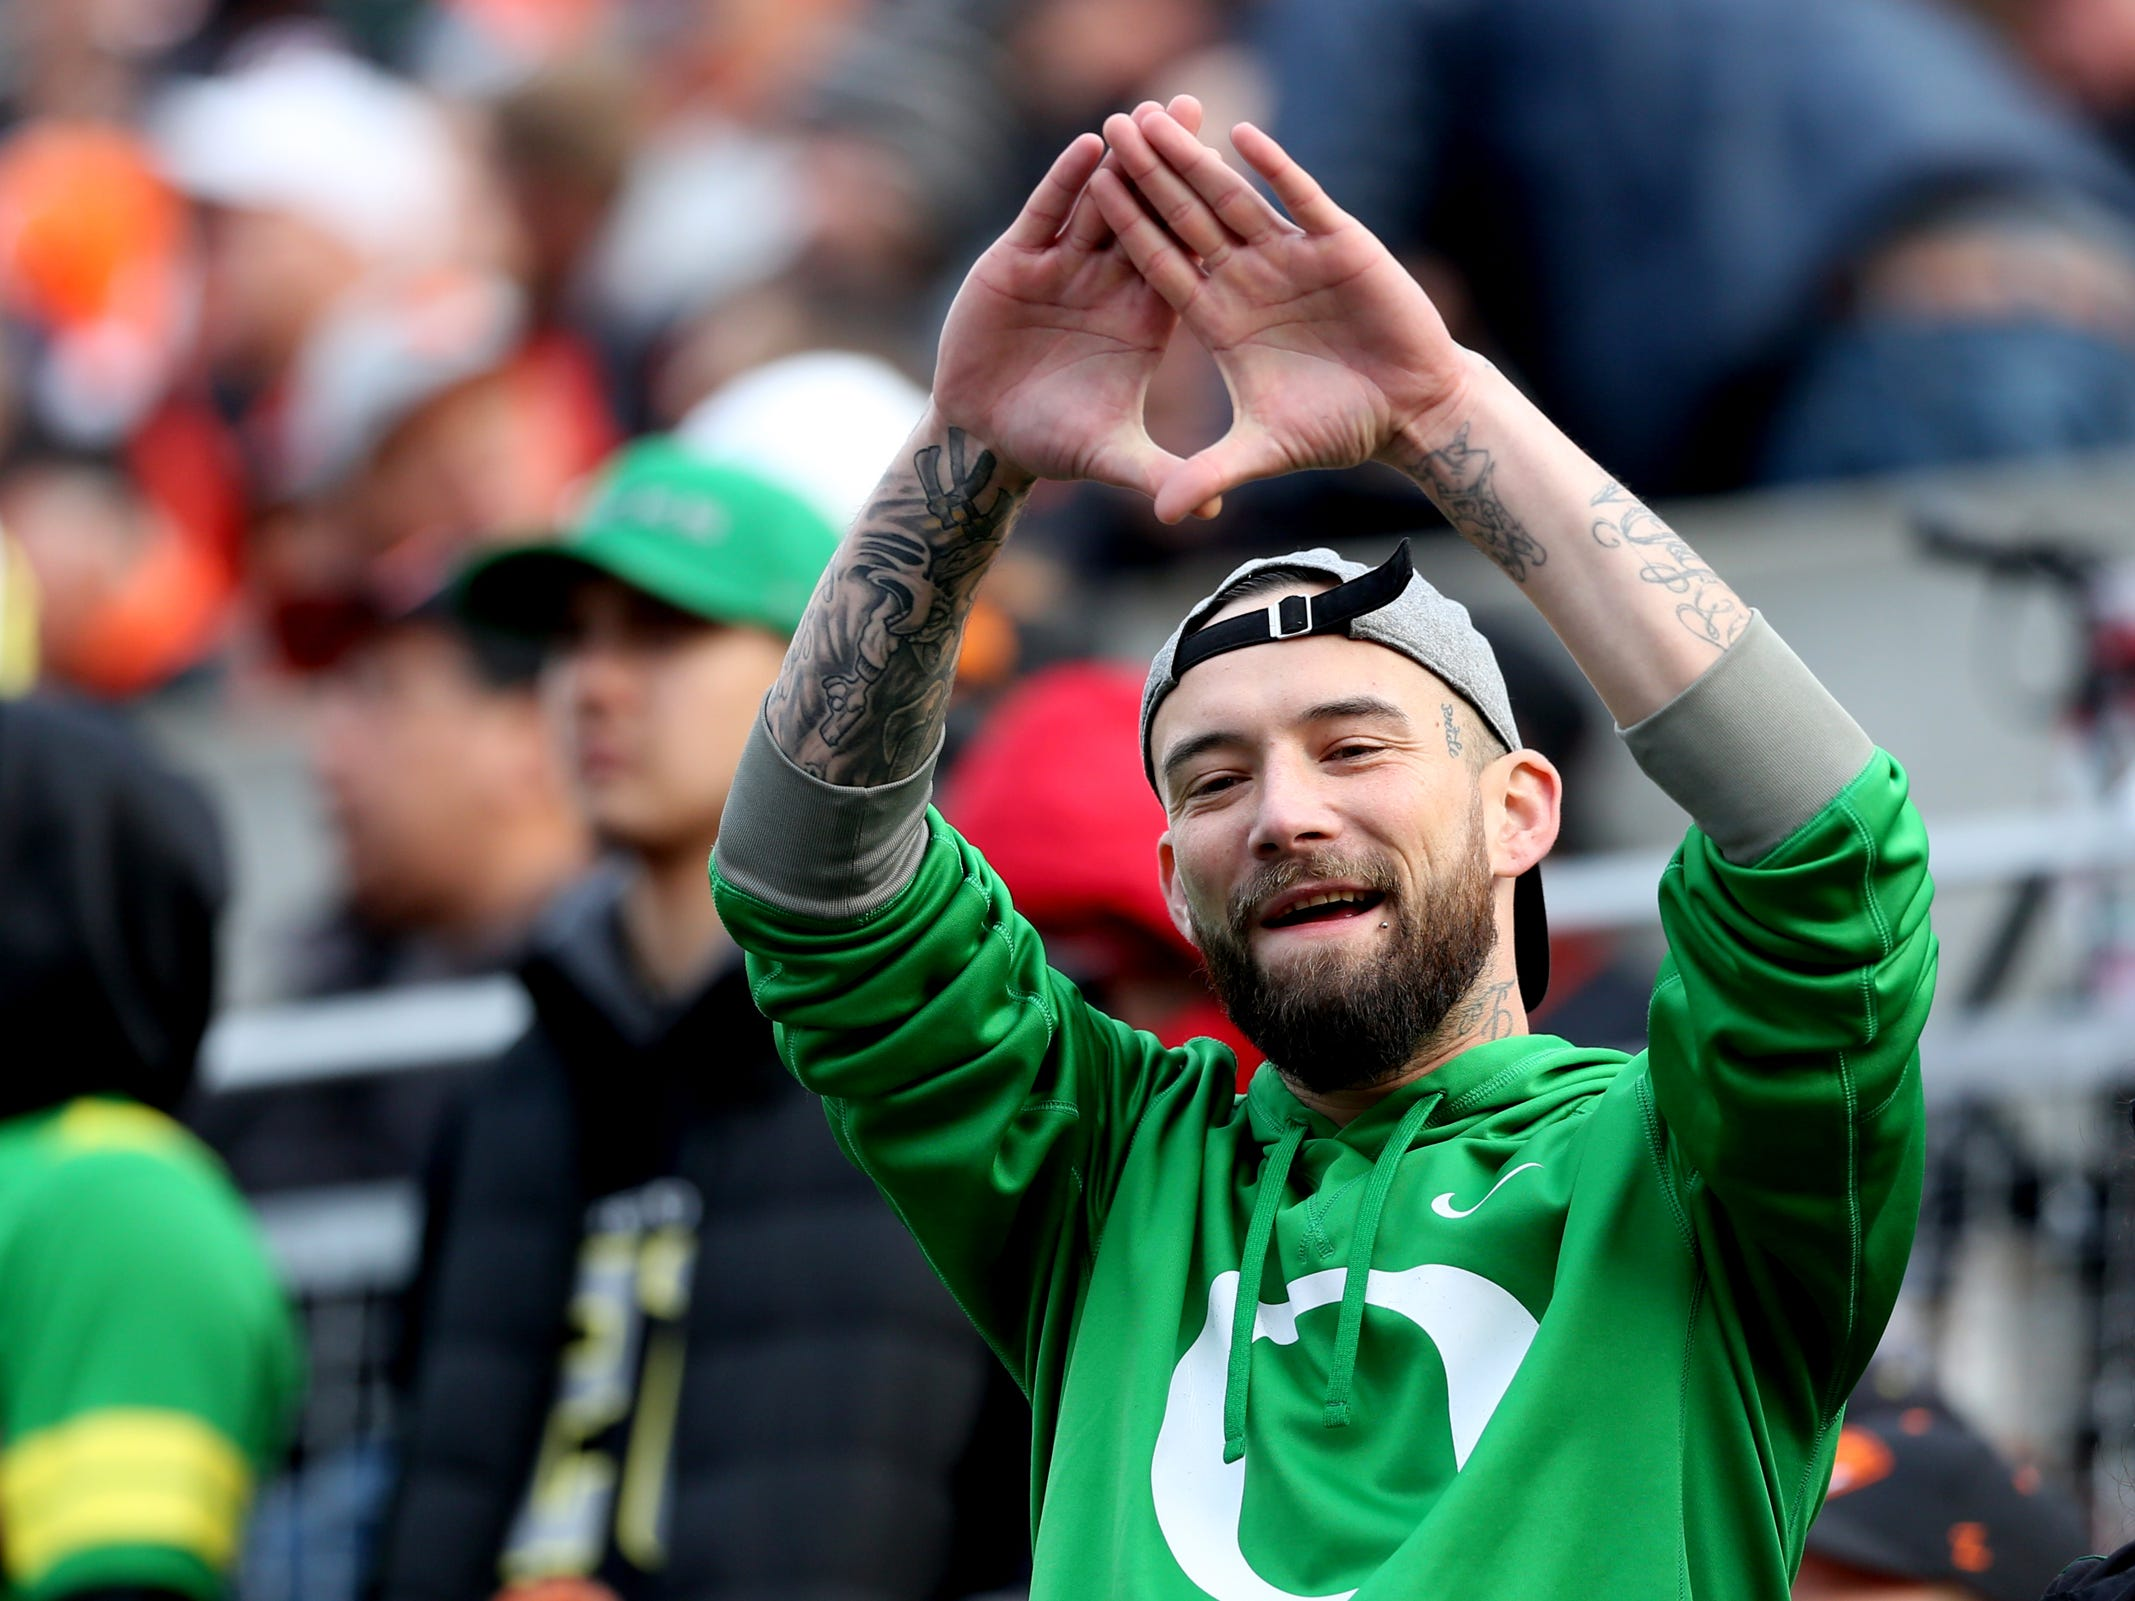 An Oregon fan cheers in the Oregon vs. Oregon State Civil war football game at Oregon State University in Corvallis on Friday, Nov. 23, 2018.